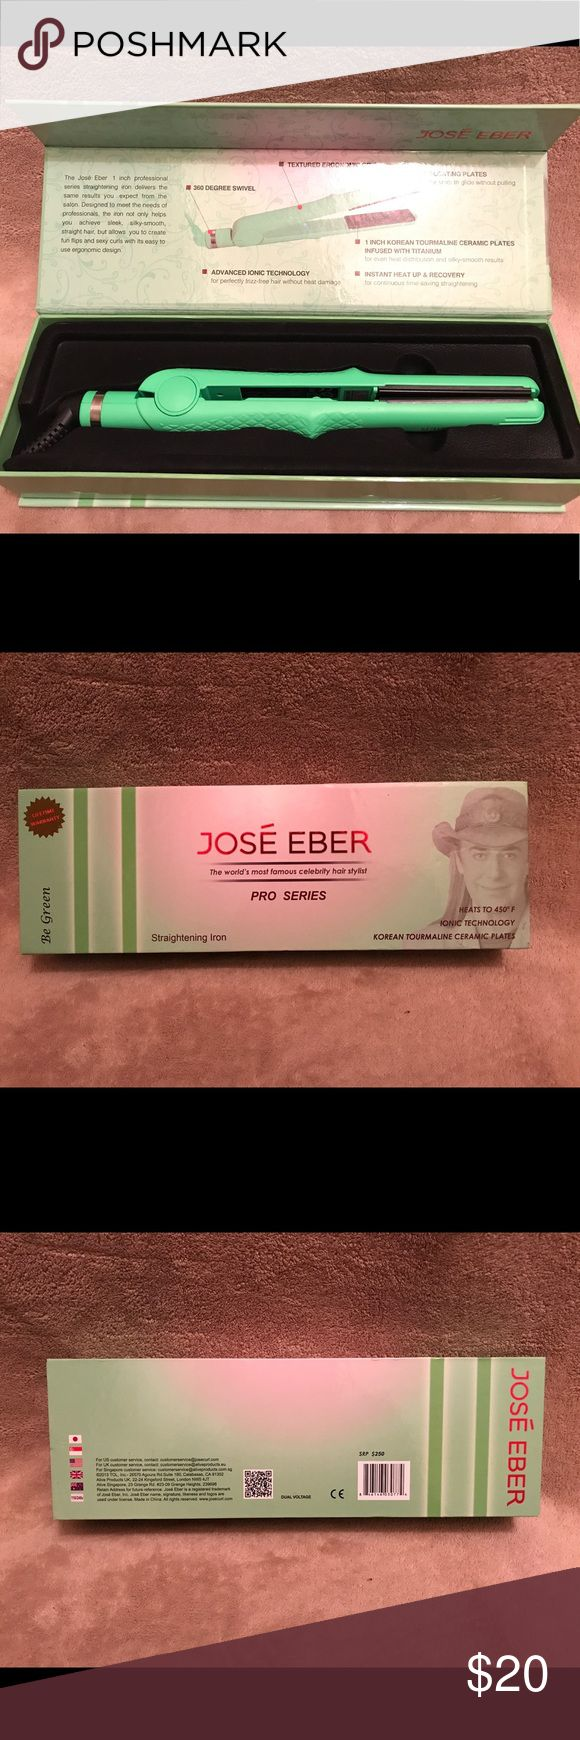 Jose Eber hair straightener like green Brand new, never used it. Works perfectly Jose Eber Other